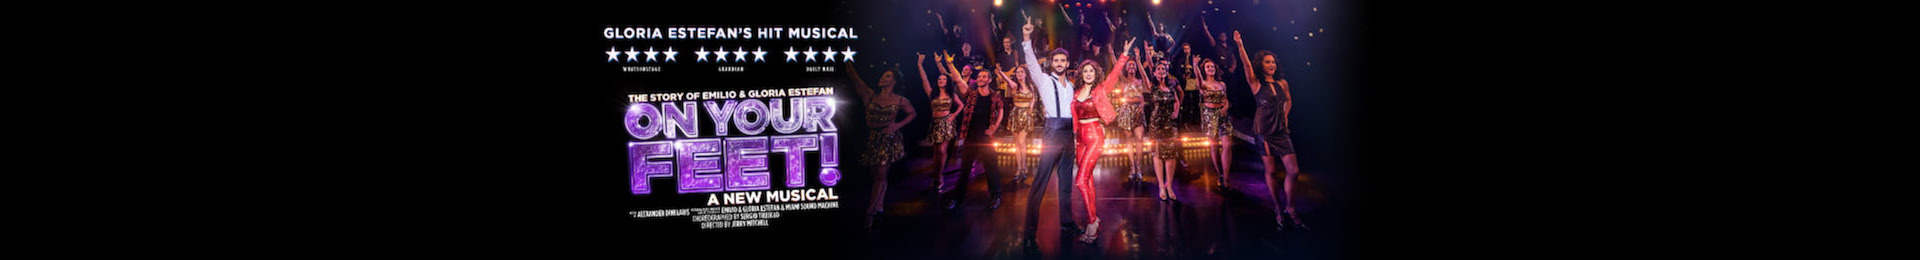 On Your Feet! The Story of Emilio and Gloria Estefan banner image